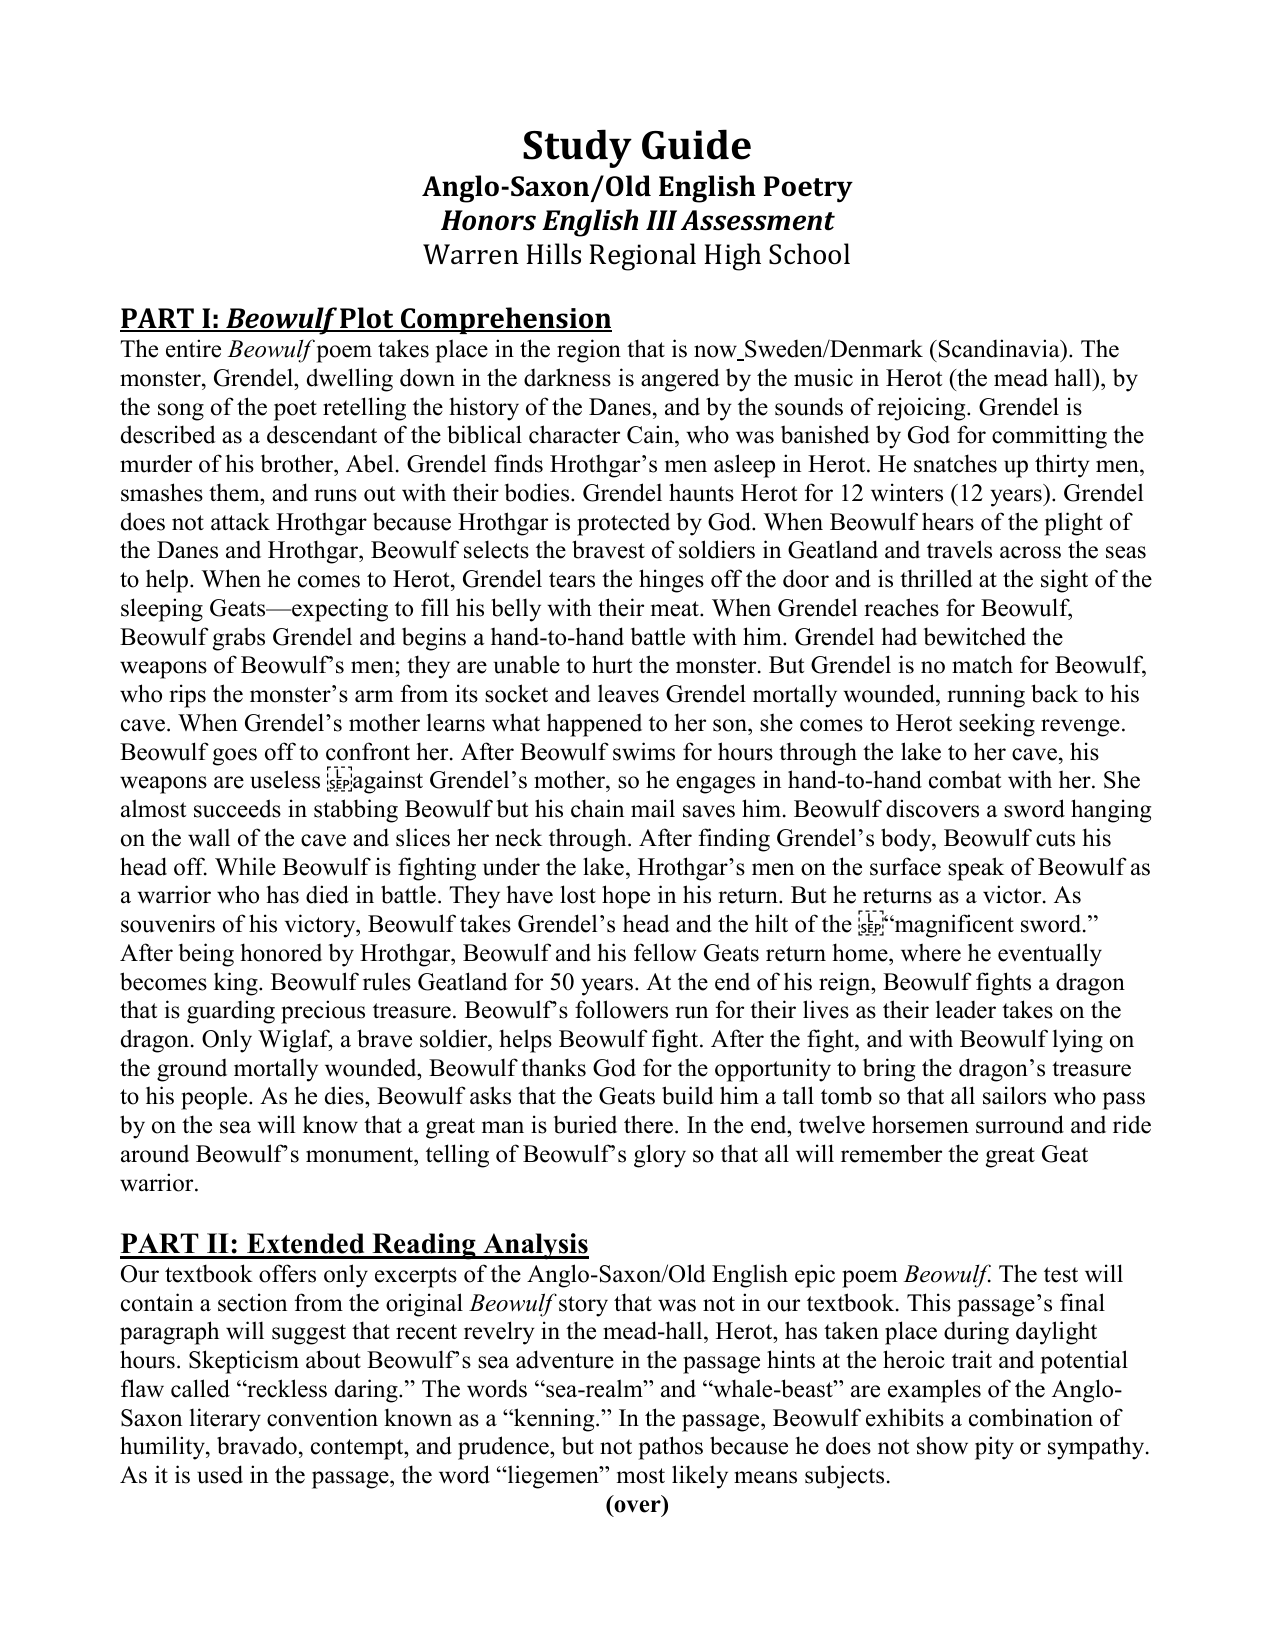 Study Guide Anglo Saxonold English Poetry Honors English Iii